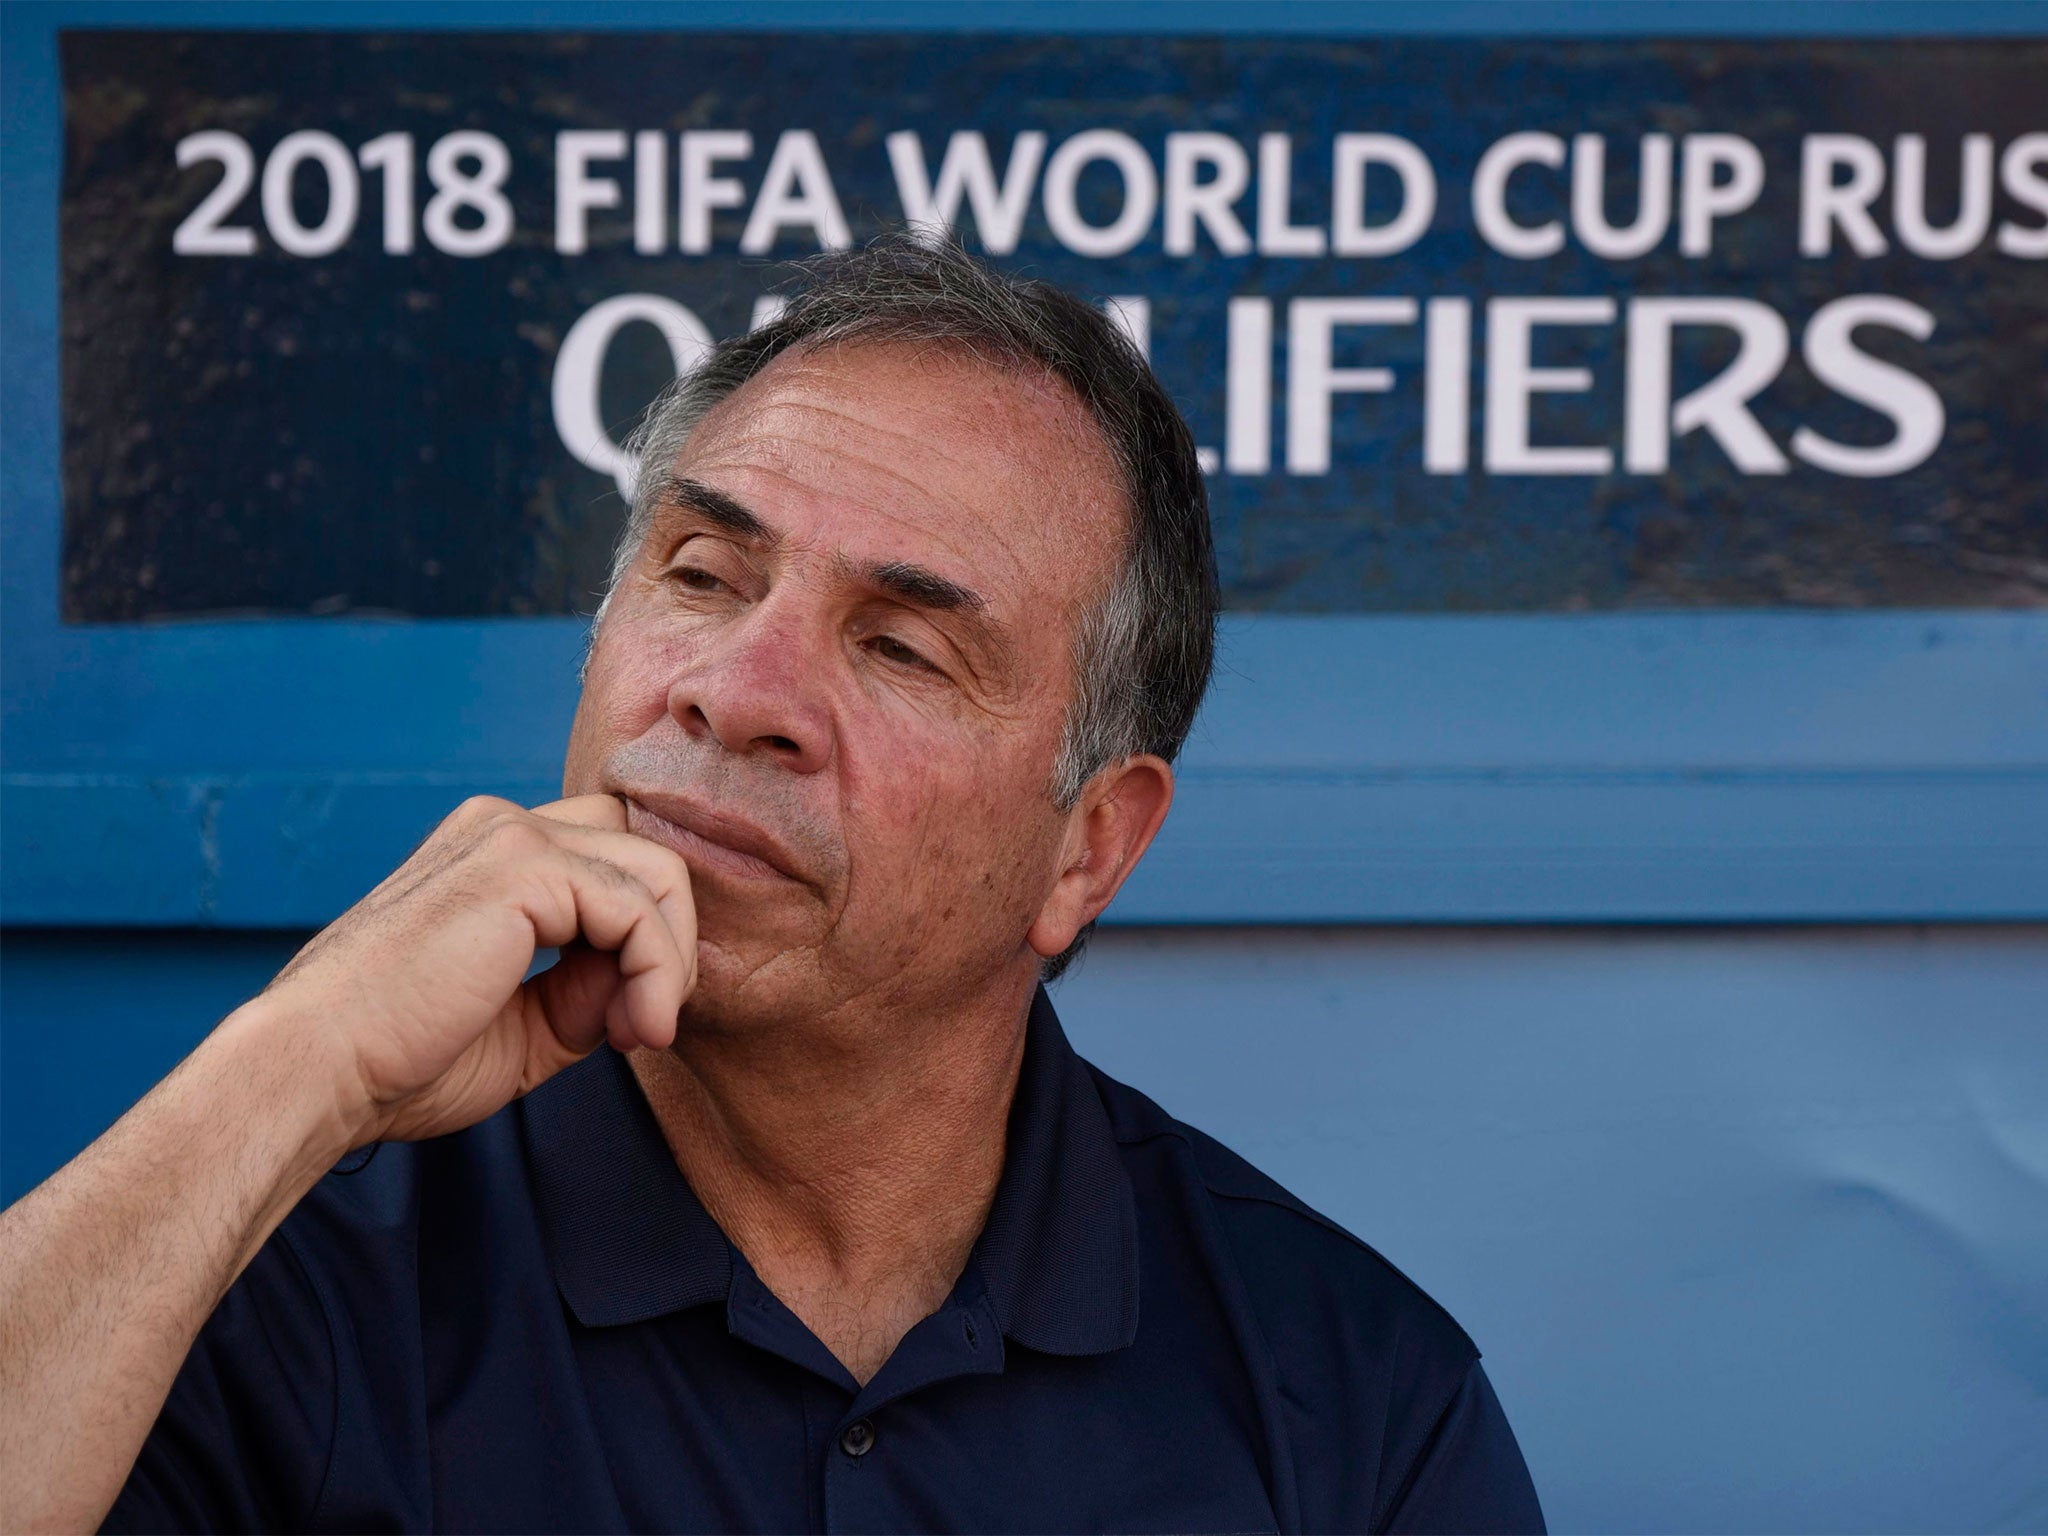 Bruce Arena resigns as USA coach after failure to qualify for World Cup 2018